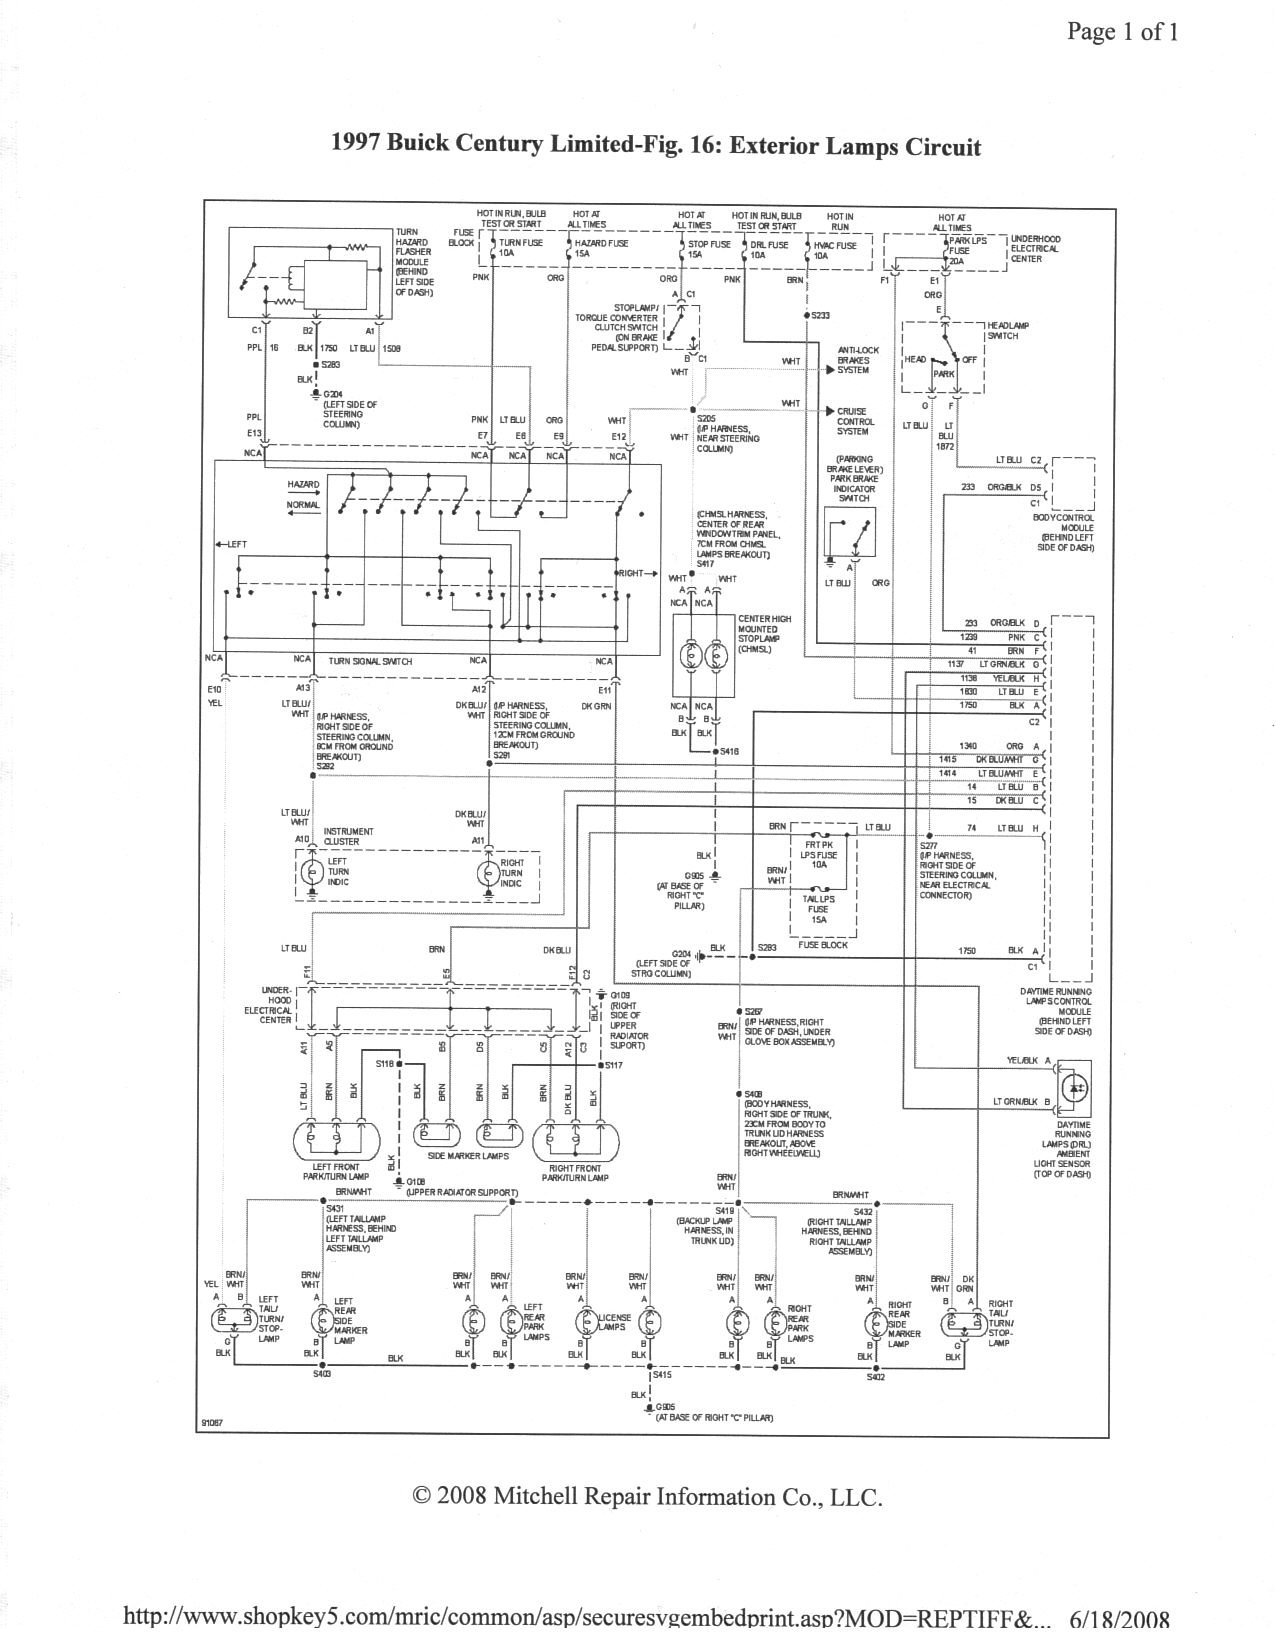 1997 buick regal wiring diagram   31 wiring diagram images